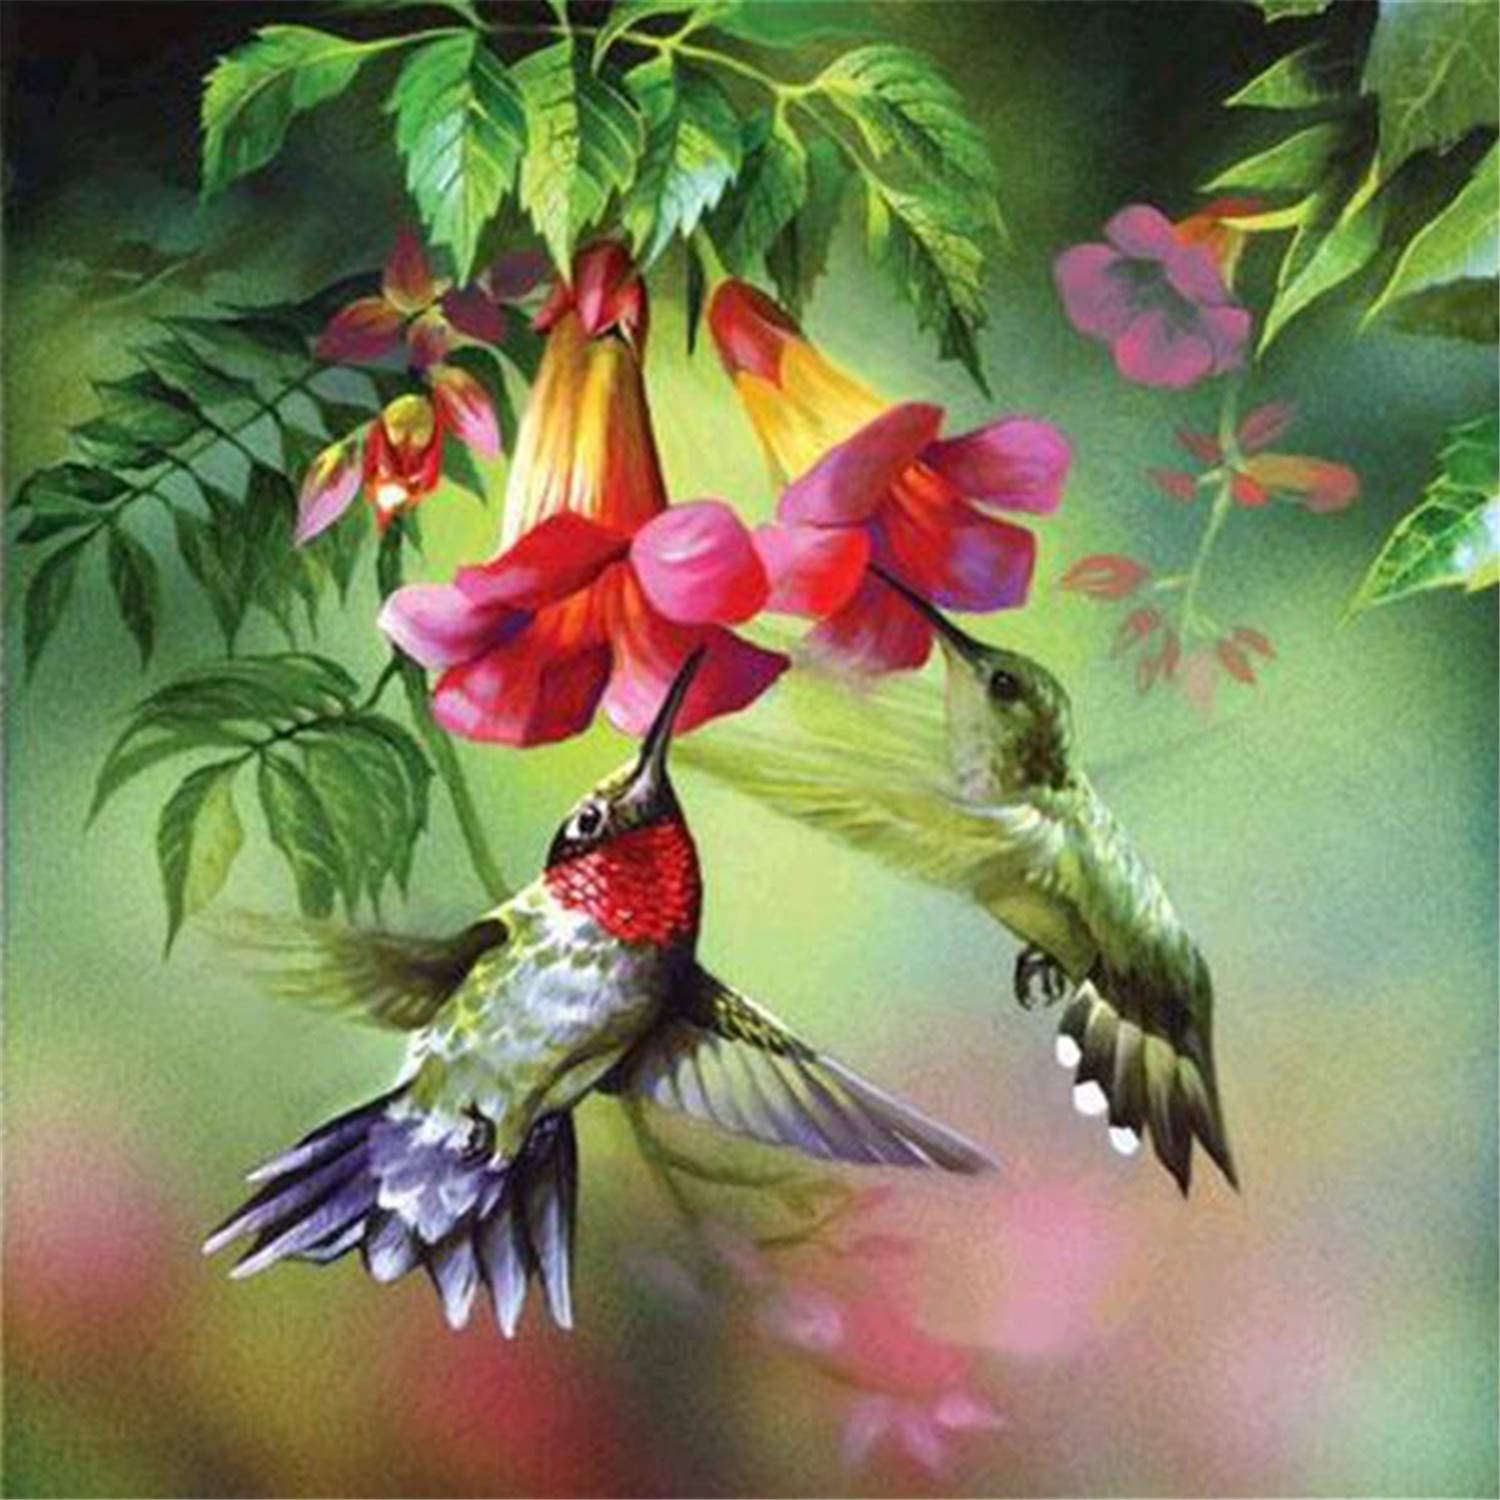 Hummingbird Gathering Honey 12x12inch DIY 5D Diamond Painting by Number Kits Full Drill Rhinestone Embroidery Cross Stitch Pictures Arts Craft for Home Wall Decor